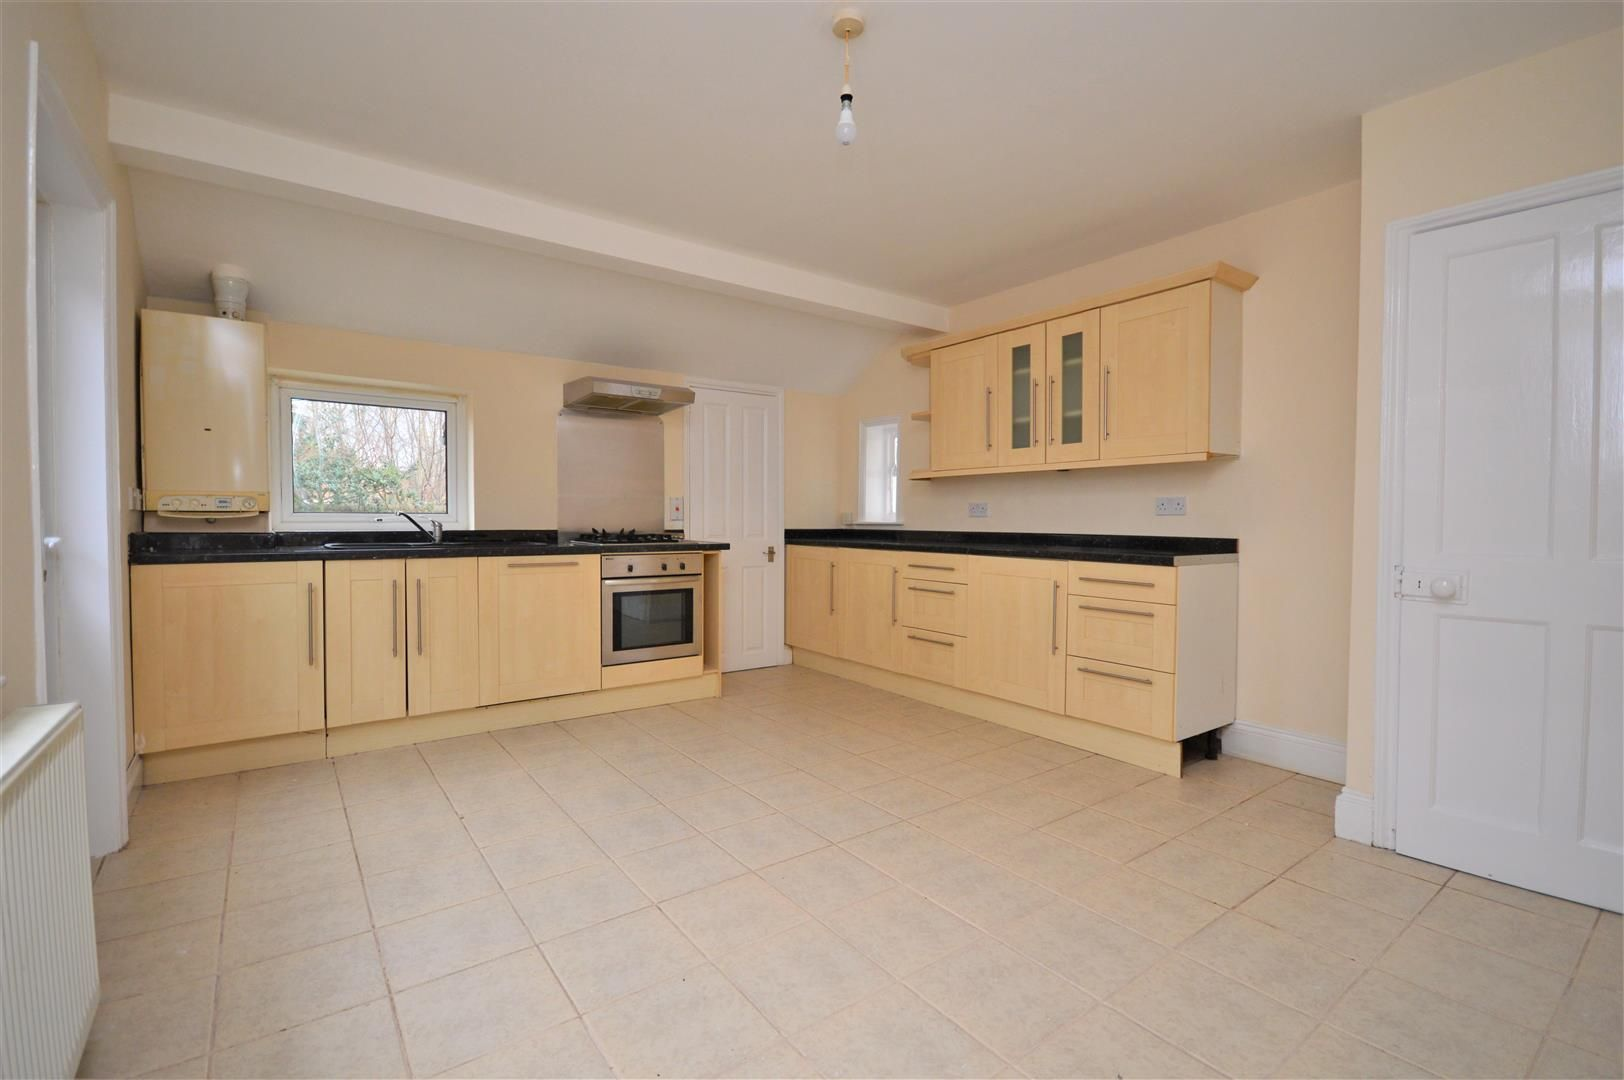 3 bed detached-bungalow for sale in Hereford 2